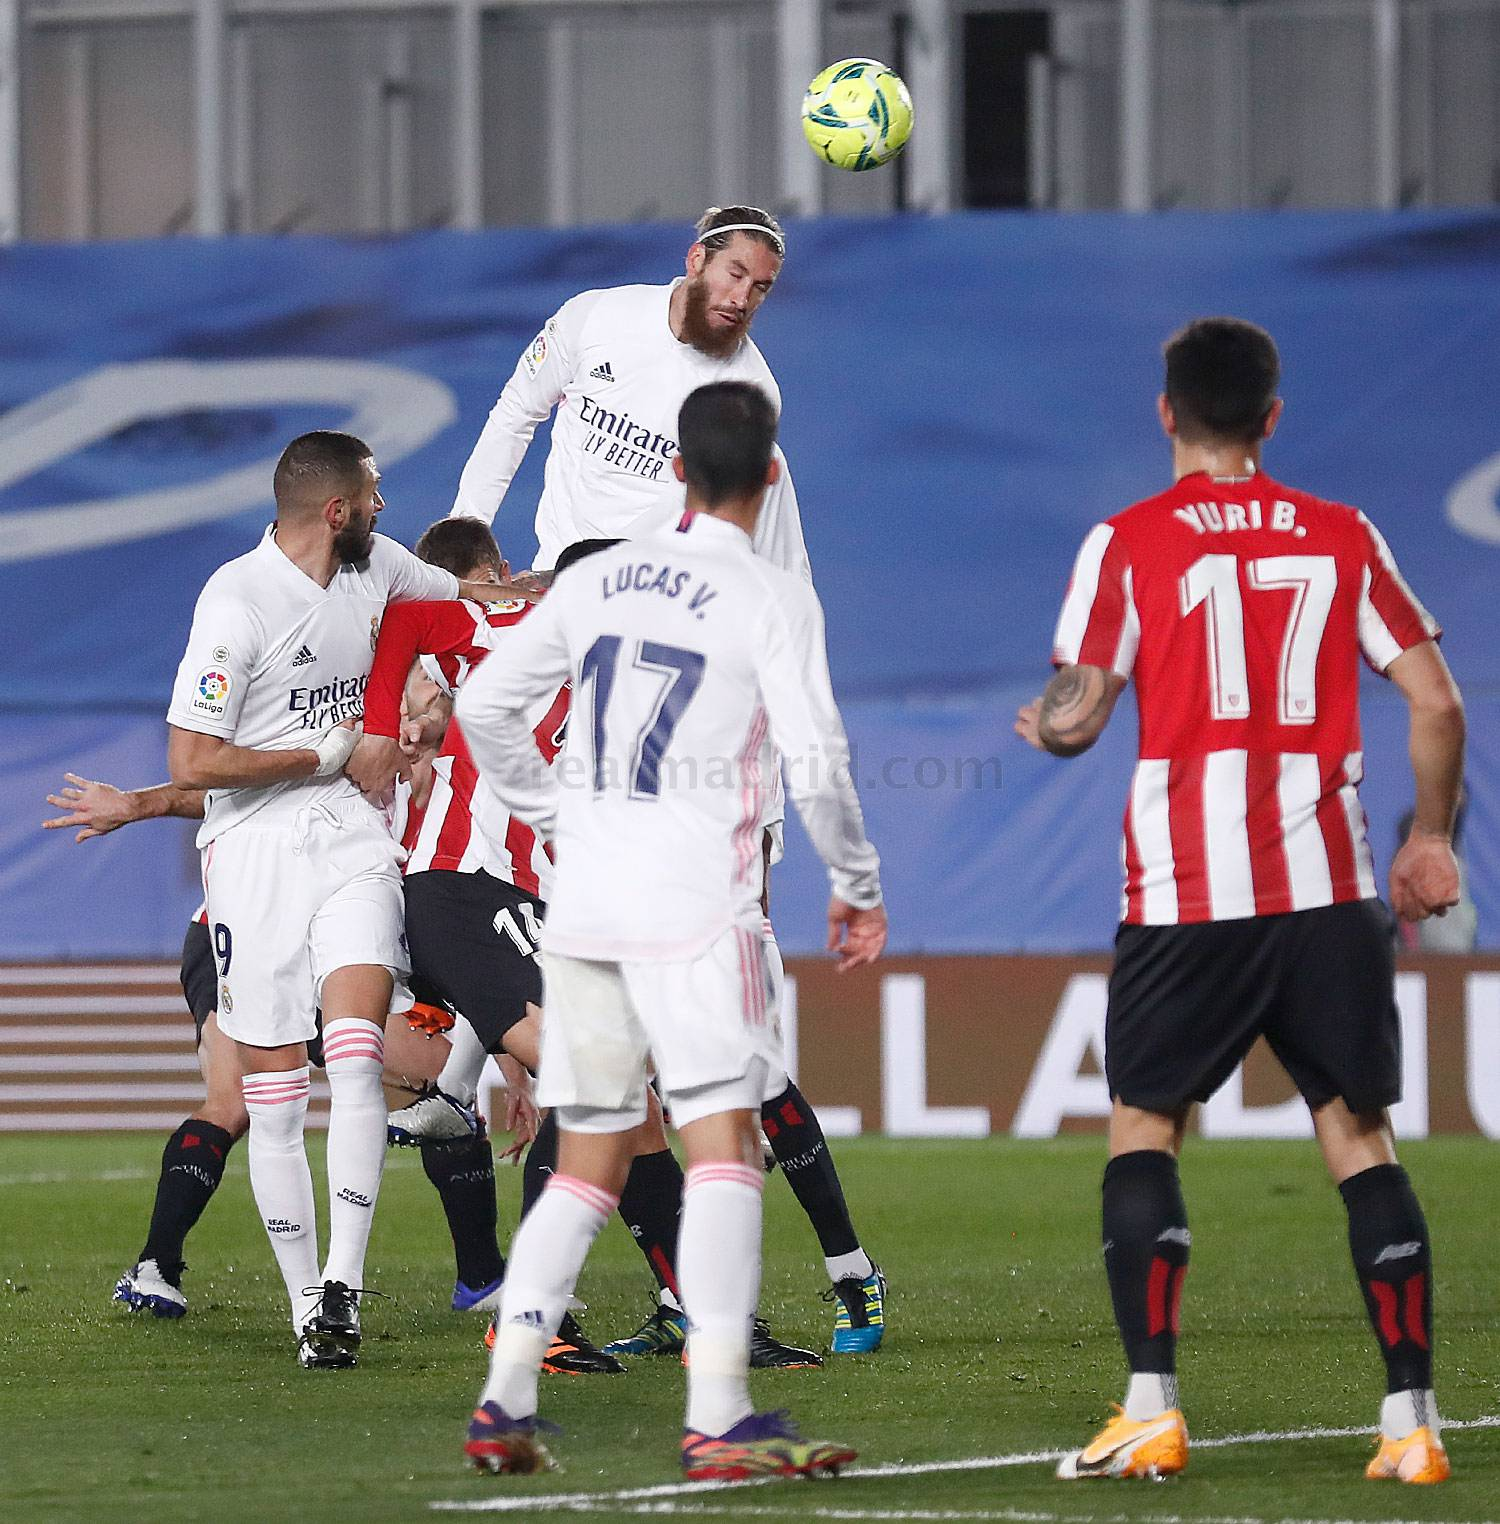 Real Madrid - Real Madrid - Athletic Club - 15-12-2020